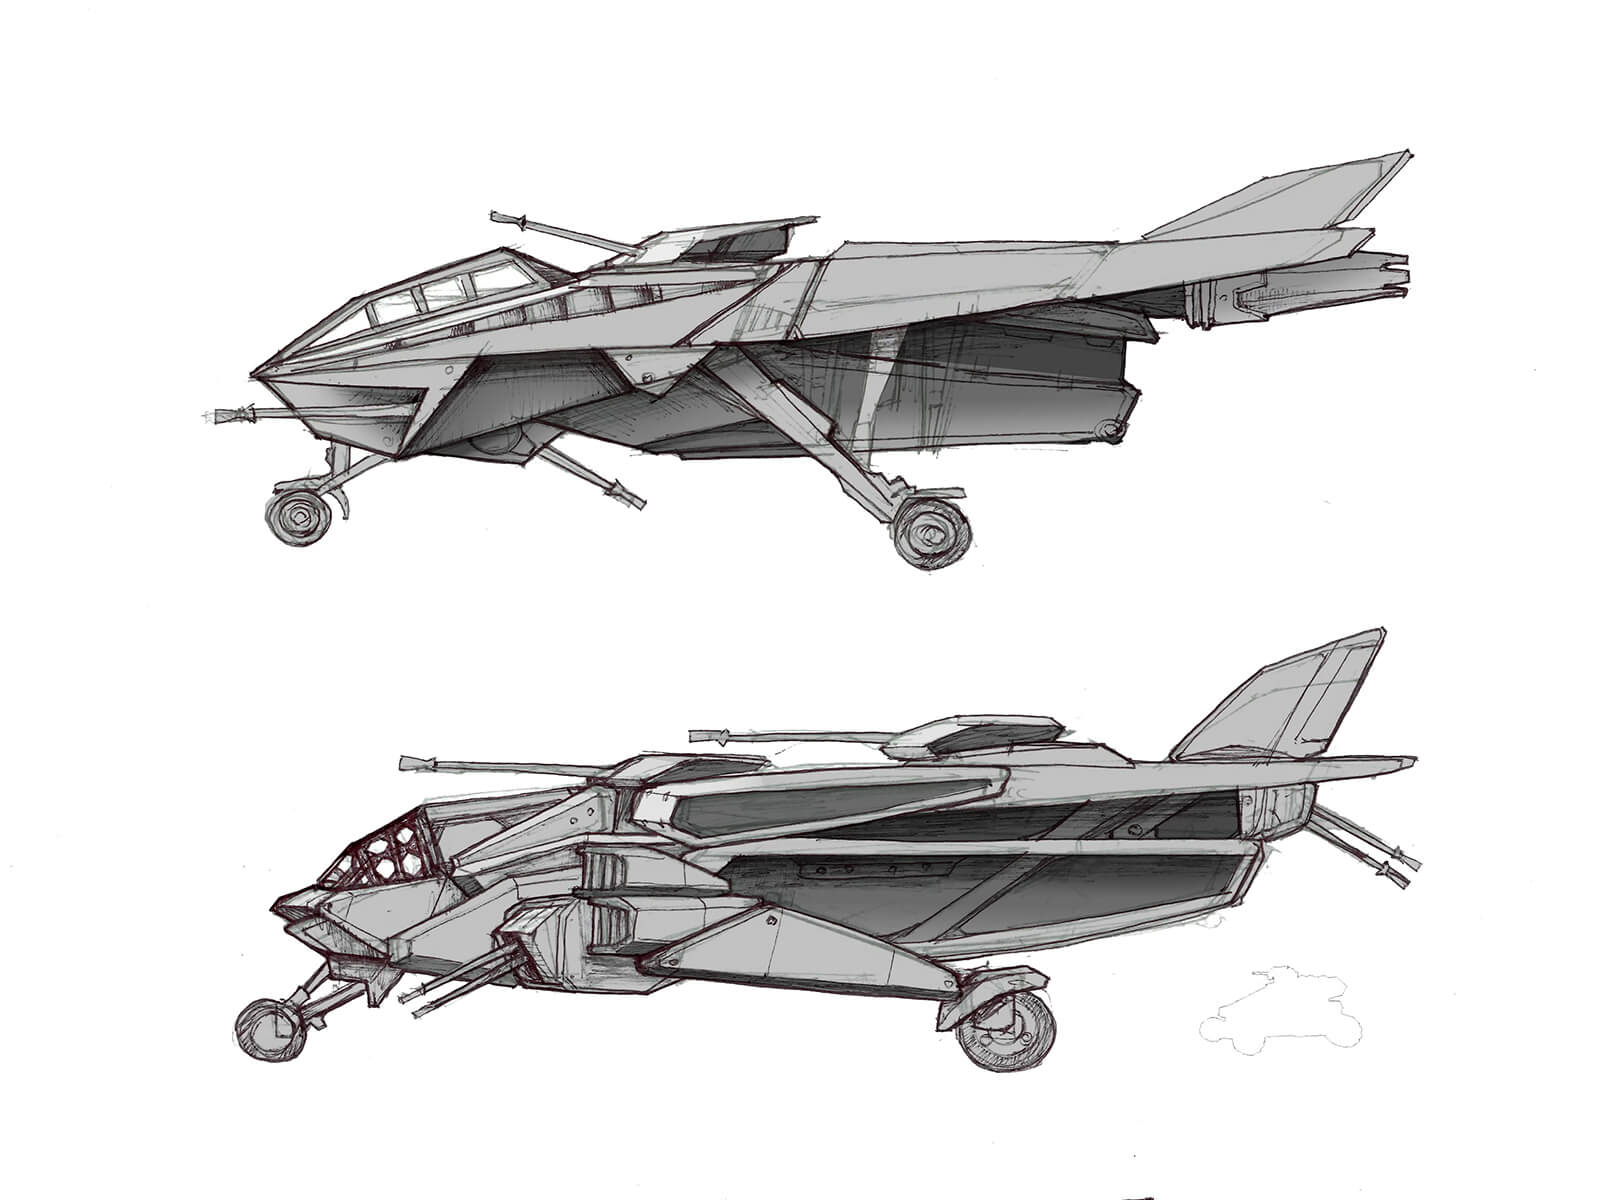 A sketched military aircraft